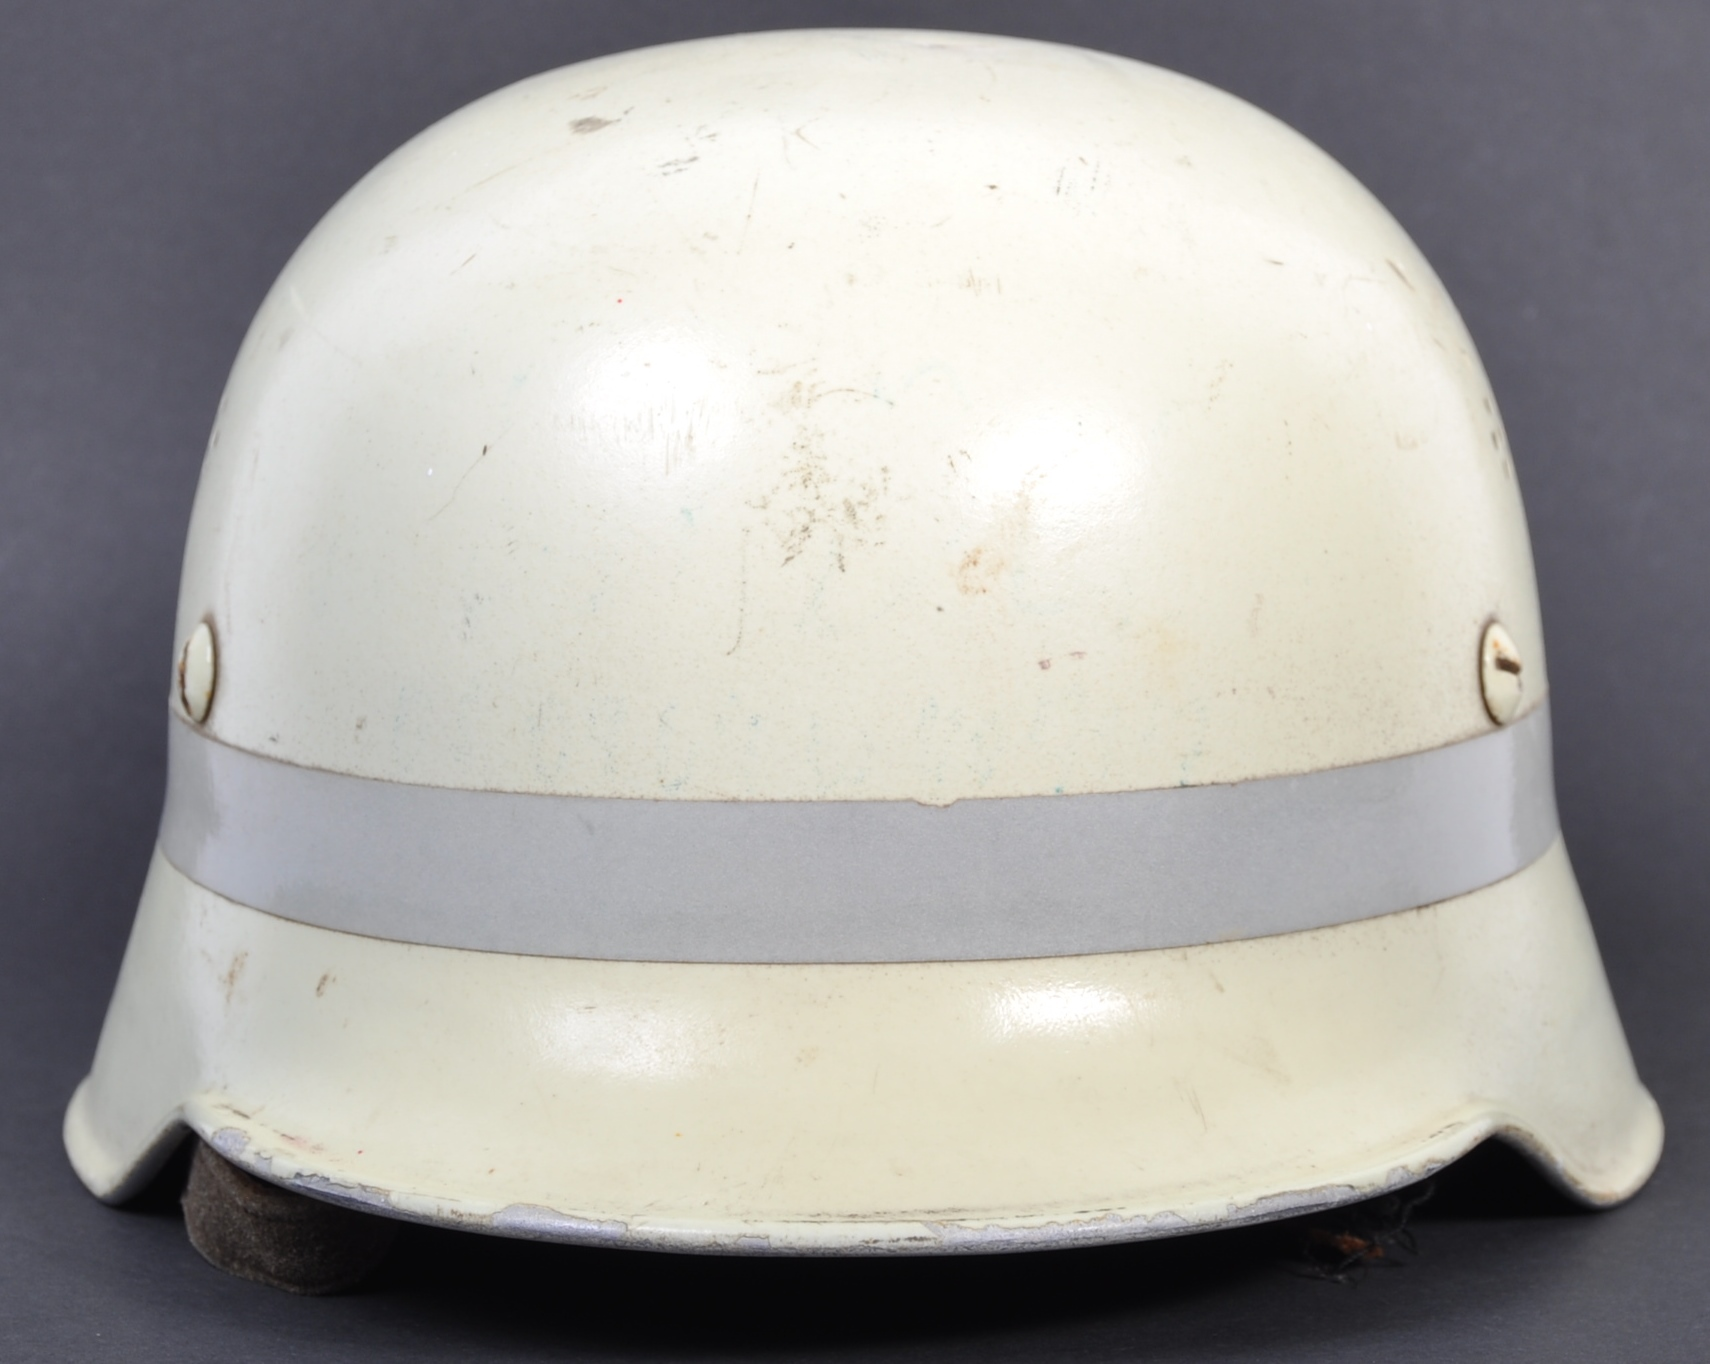 RARE POST-WWII GERMAN LUMINOUS FIRE FIGHTER'S HELM - Image 3 of 6